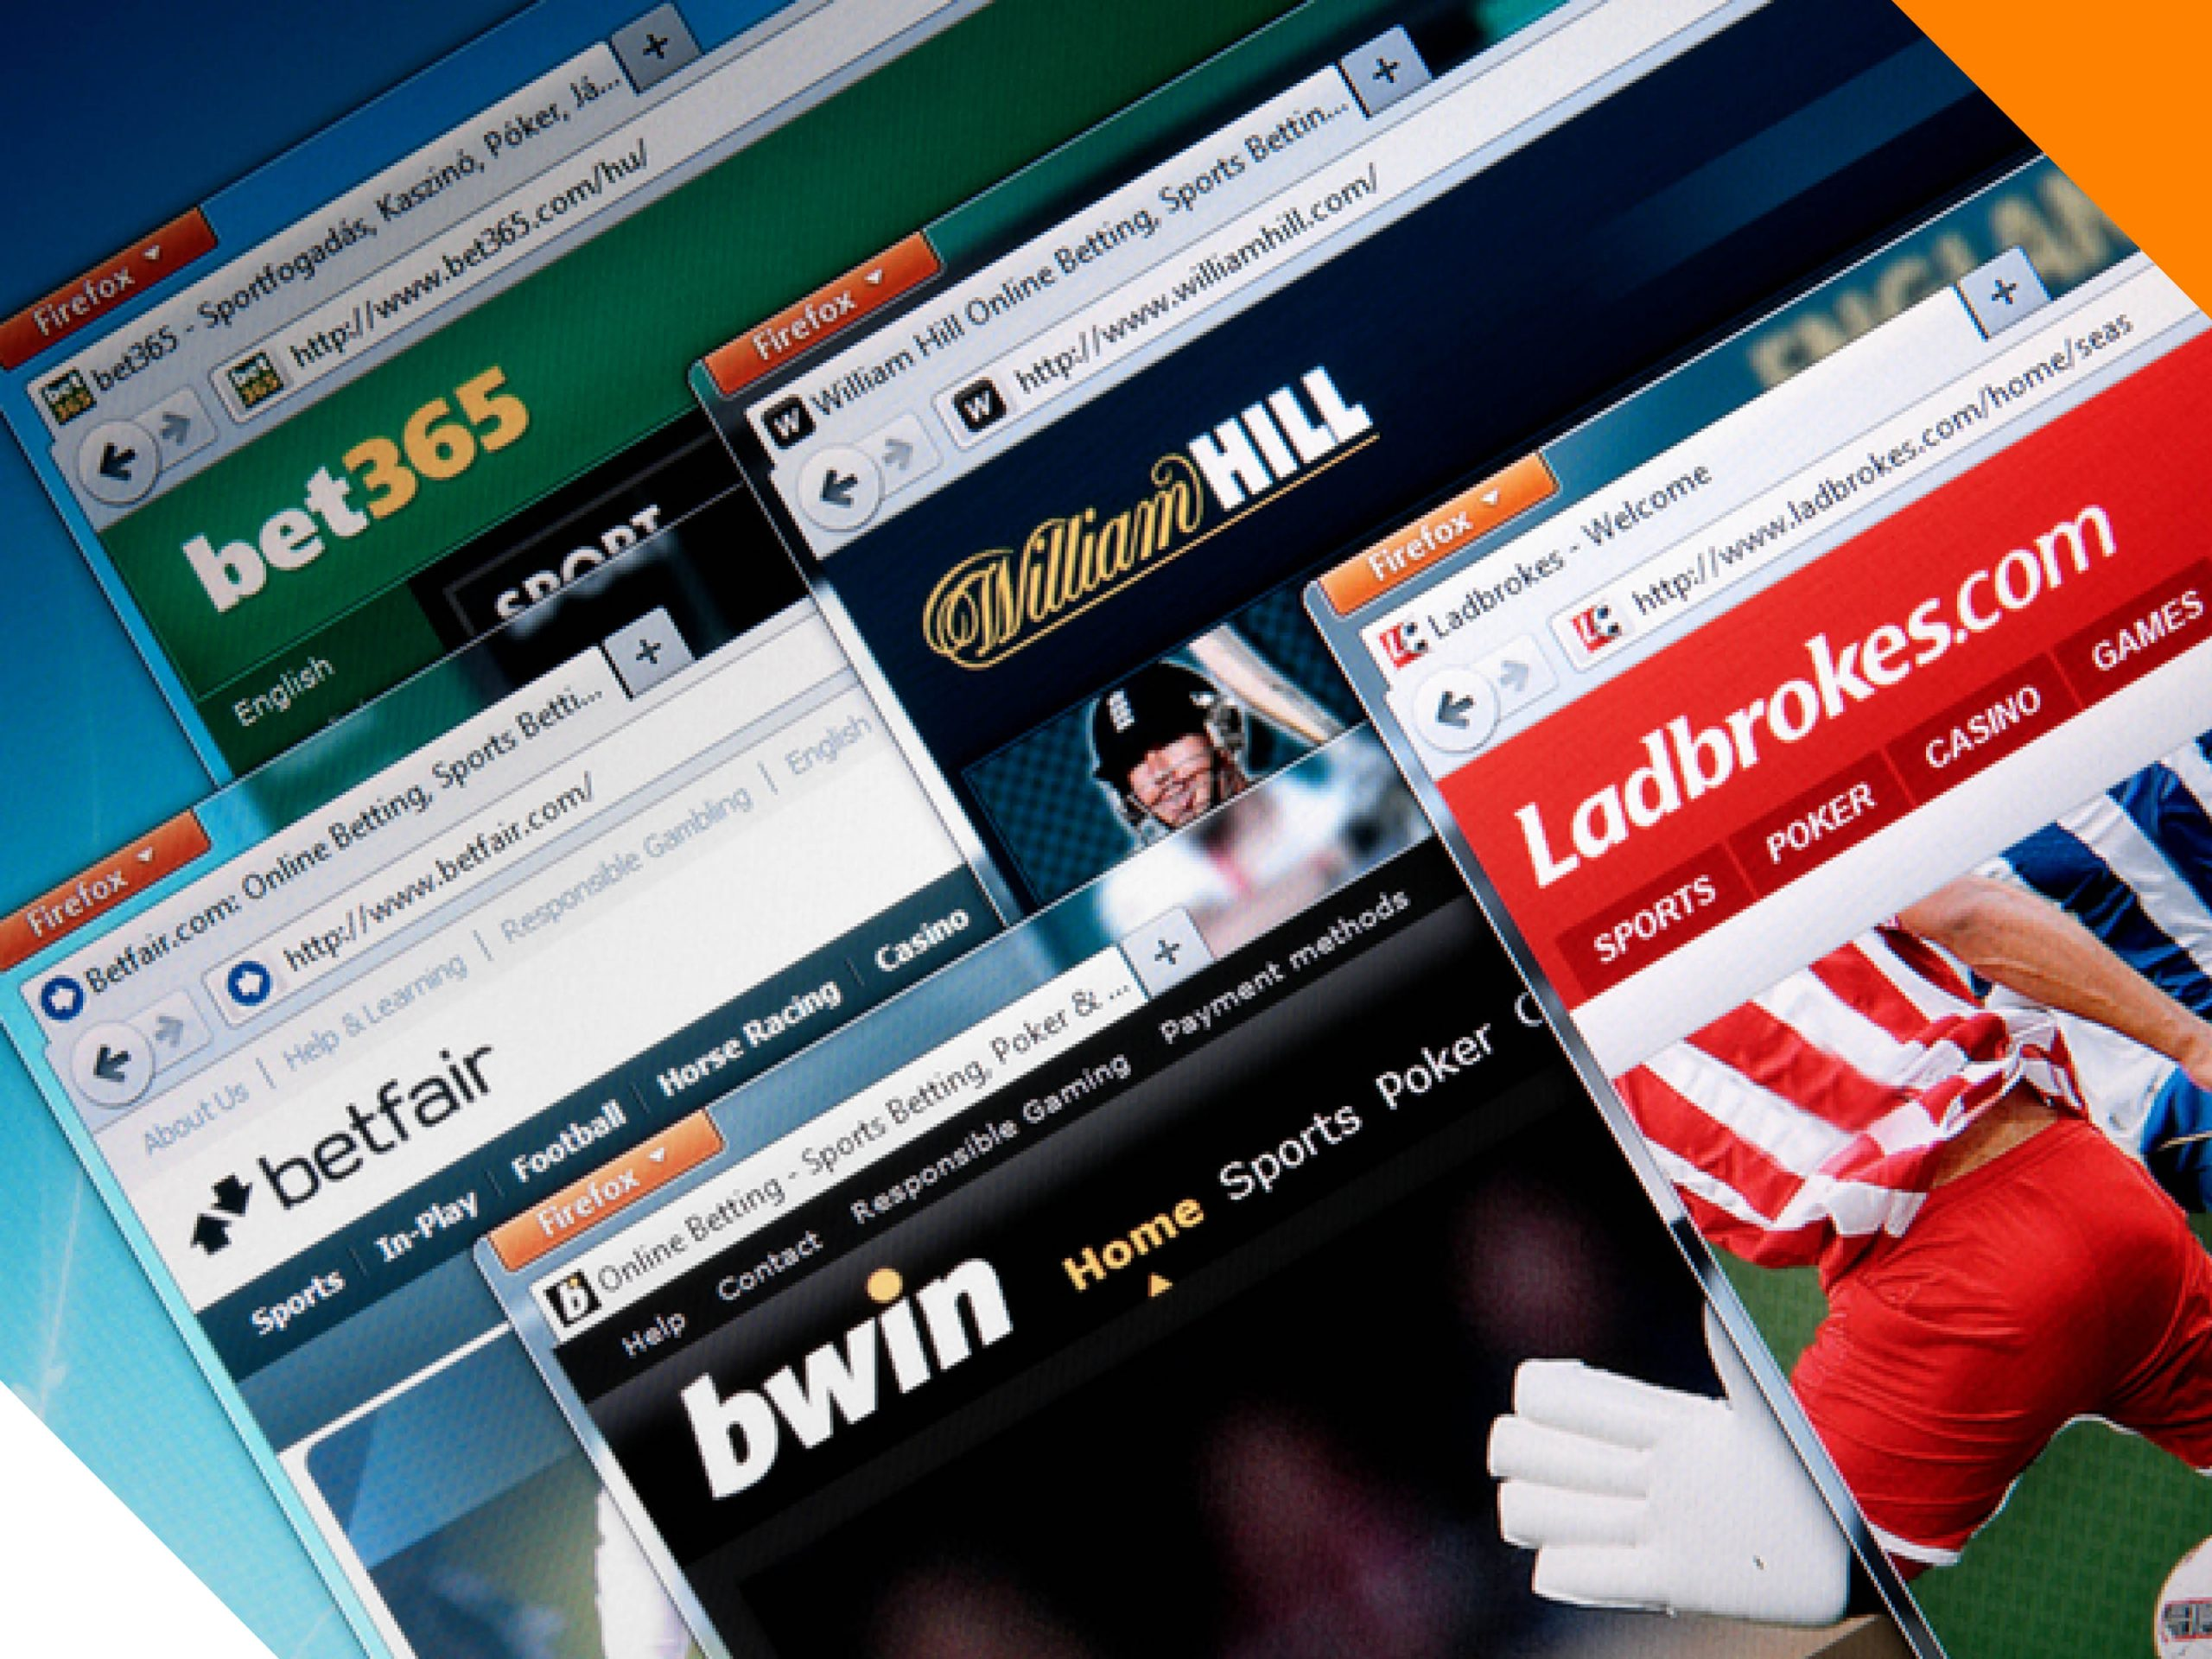 10 Ways Twitter Damaged My Gambling Without Me Observing